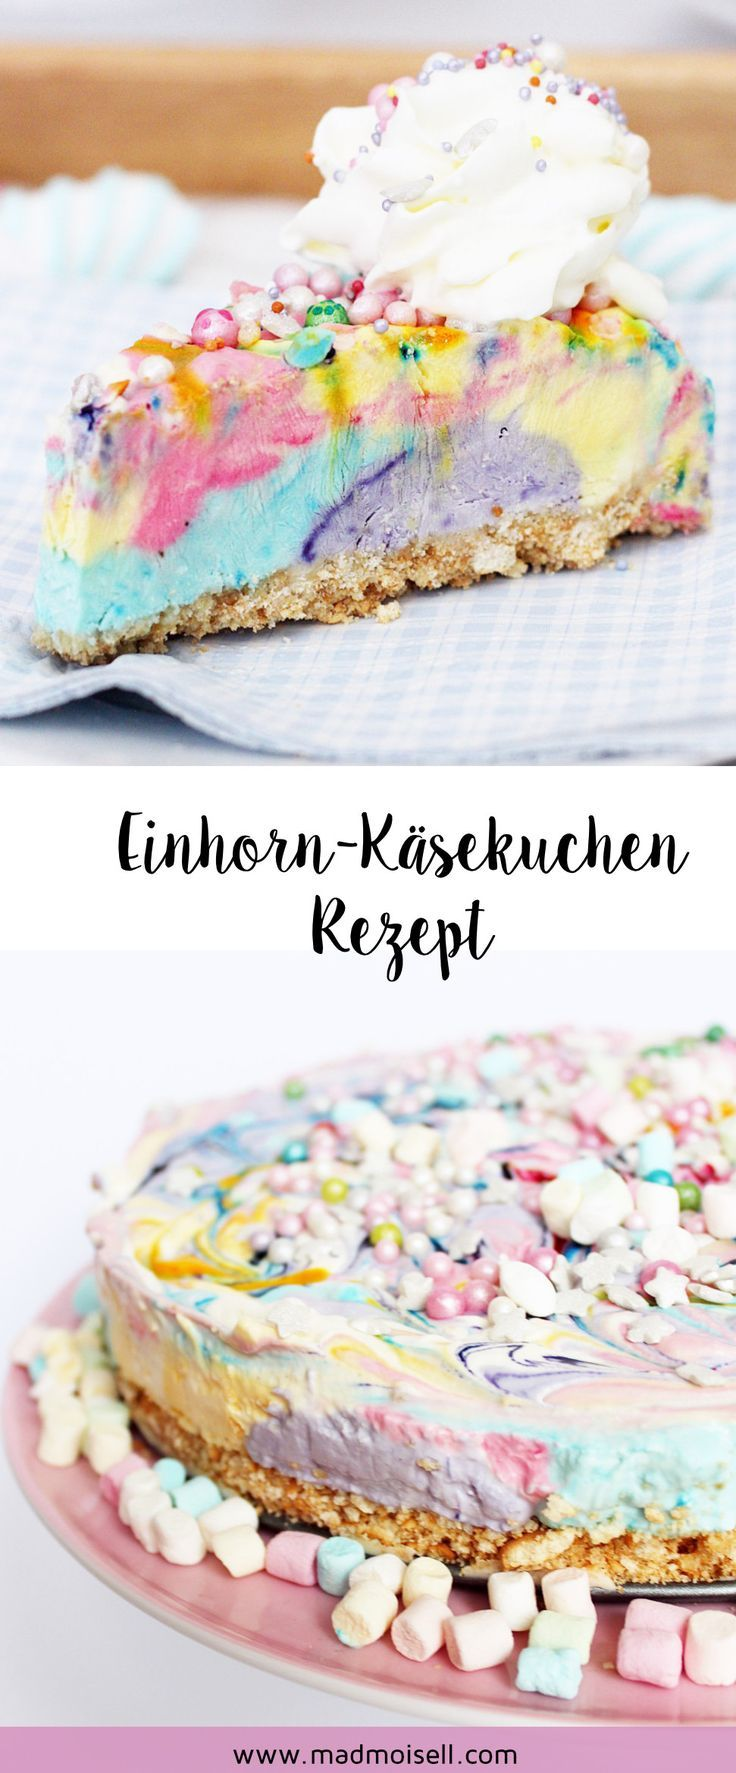 71 best images about backen f r kinder on pinterest rolo pretzels schokolade and pinata cookies. Black Bedroom Furniture Sets. Home Design Ideas